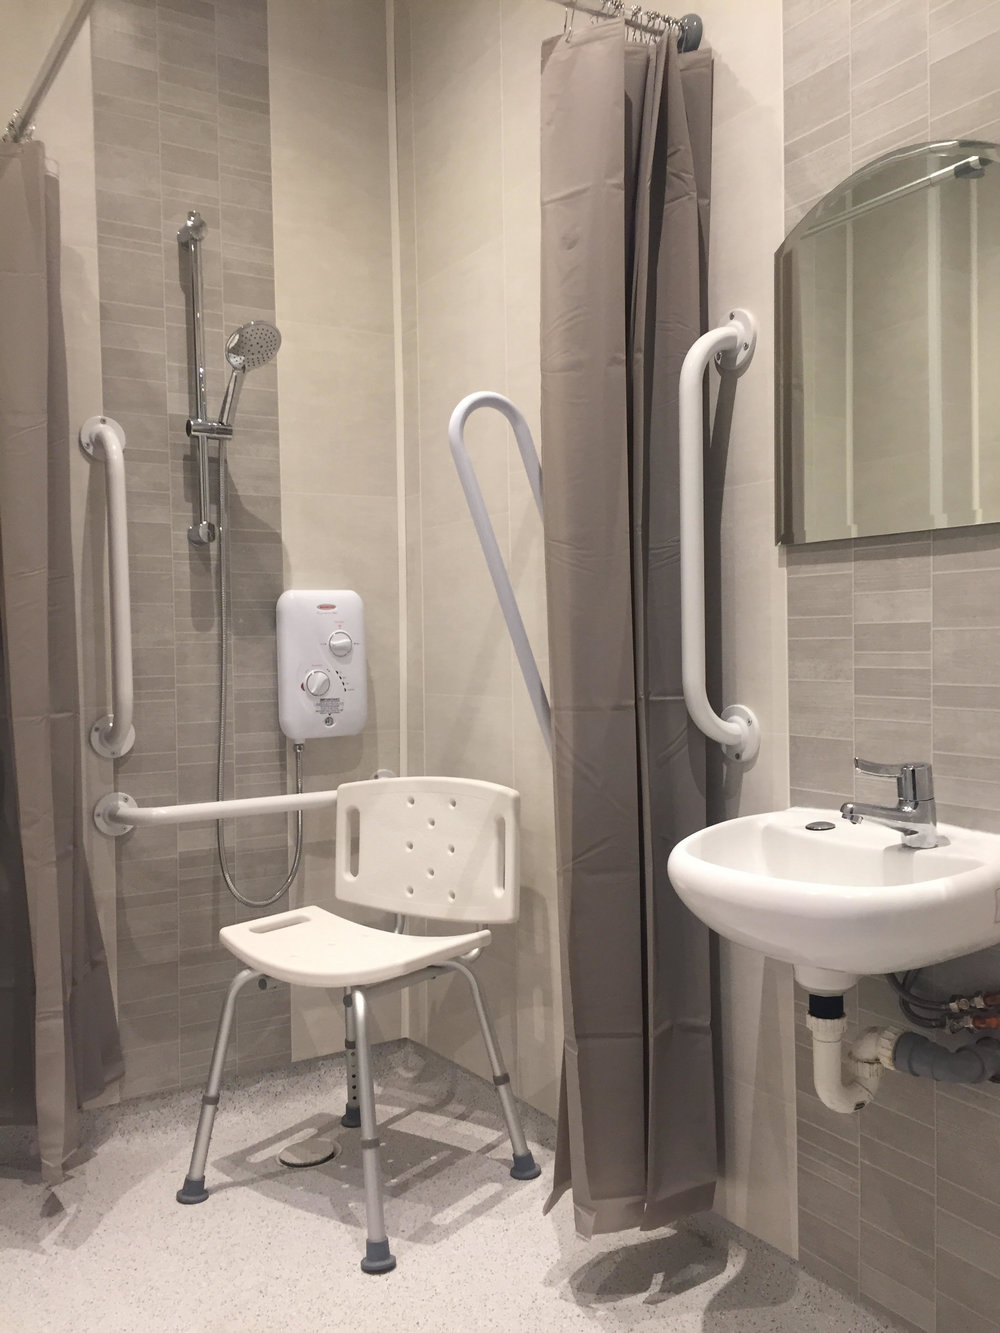 Refurbished toilet and showering facilities -